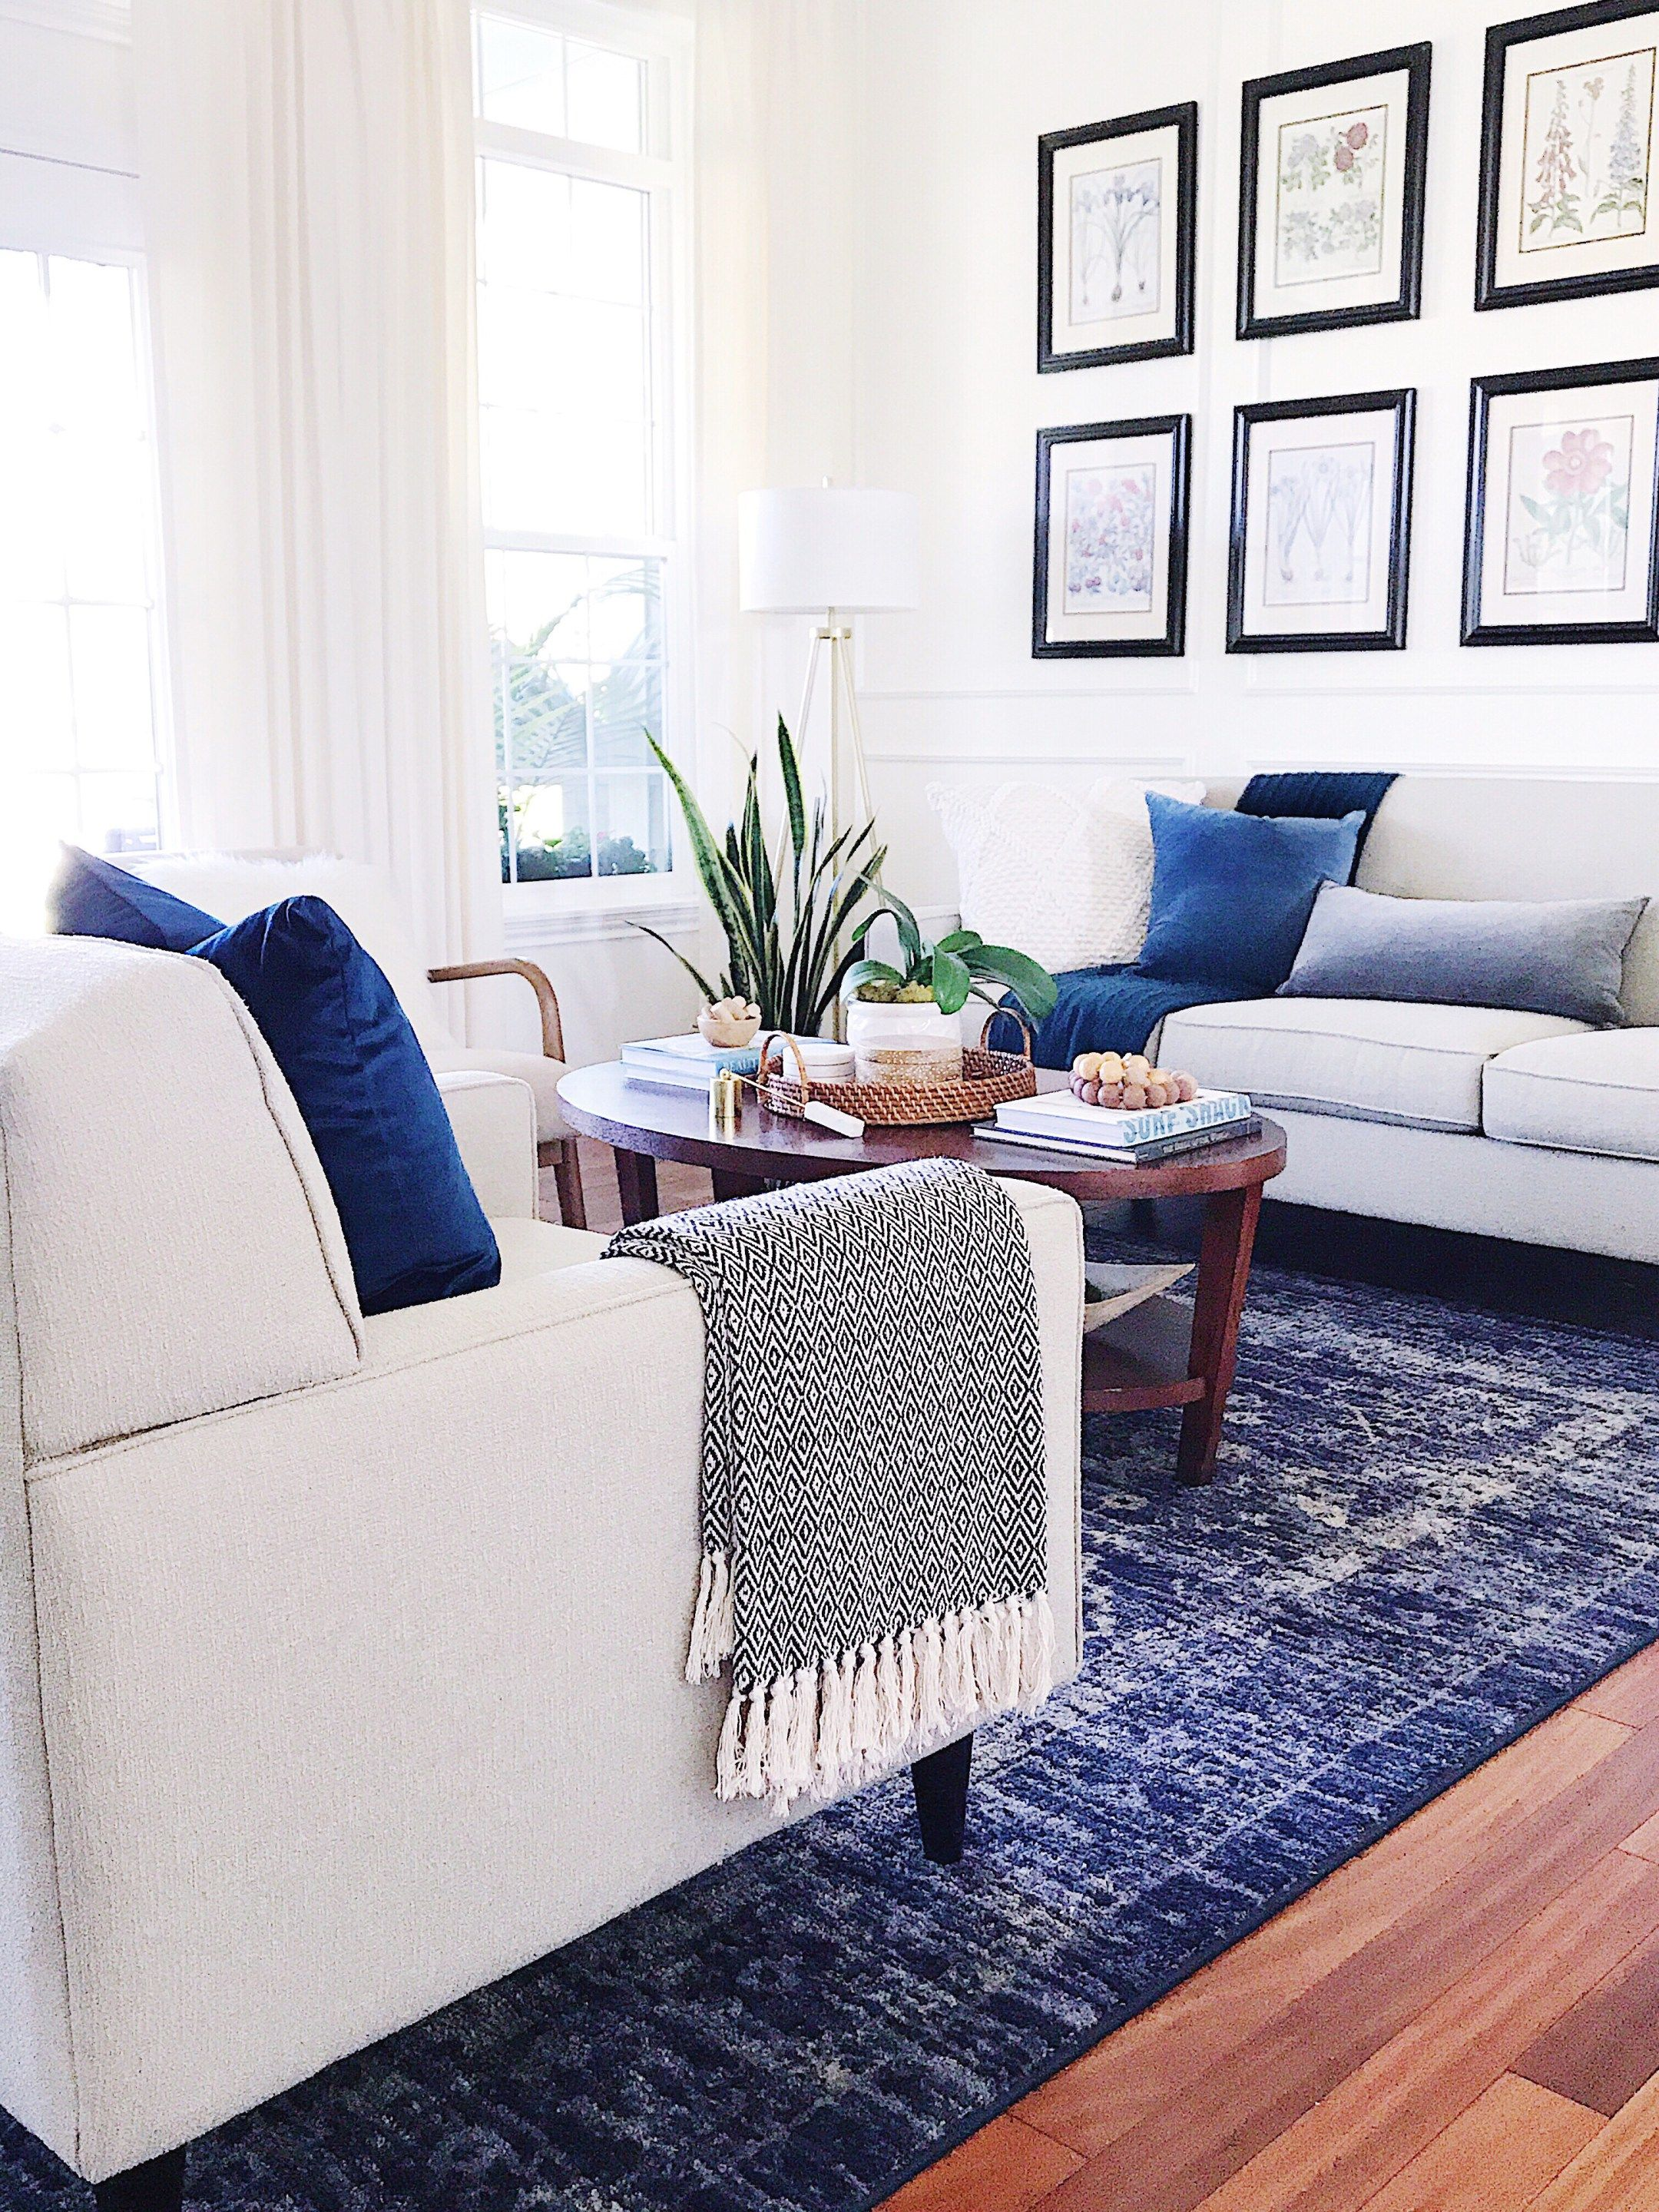 Touches of Fall Home Tour: Simple Fall Decorating Ideas images